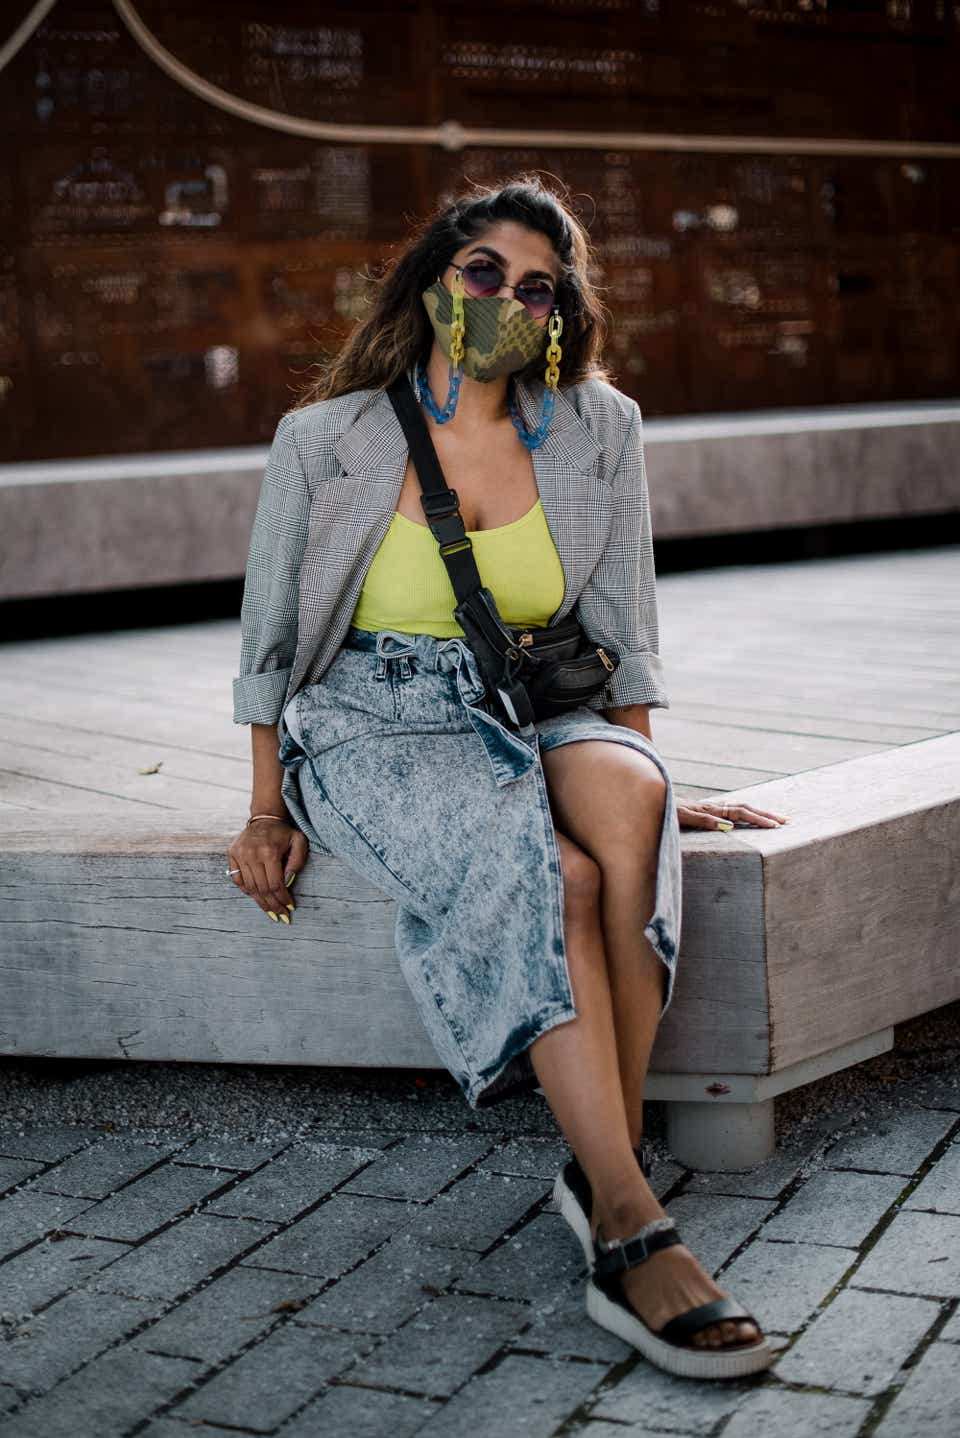 Payal is sitting on a step wearing a mask with a lucite chain attached to it, a gray blazer, a neon green tank top, and an acid-wash knee-length denim skirt. She has on black sandals and a black cross-body bag.